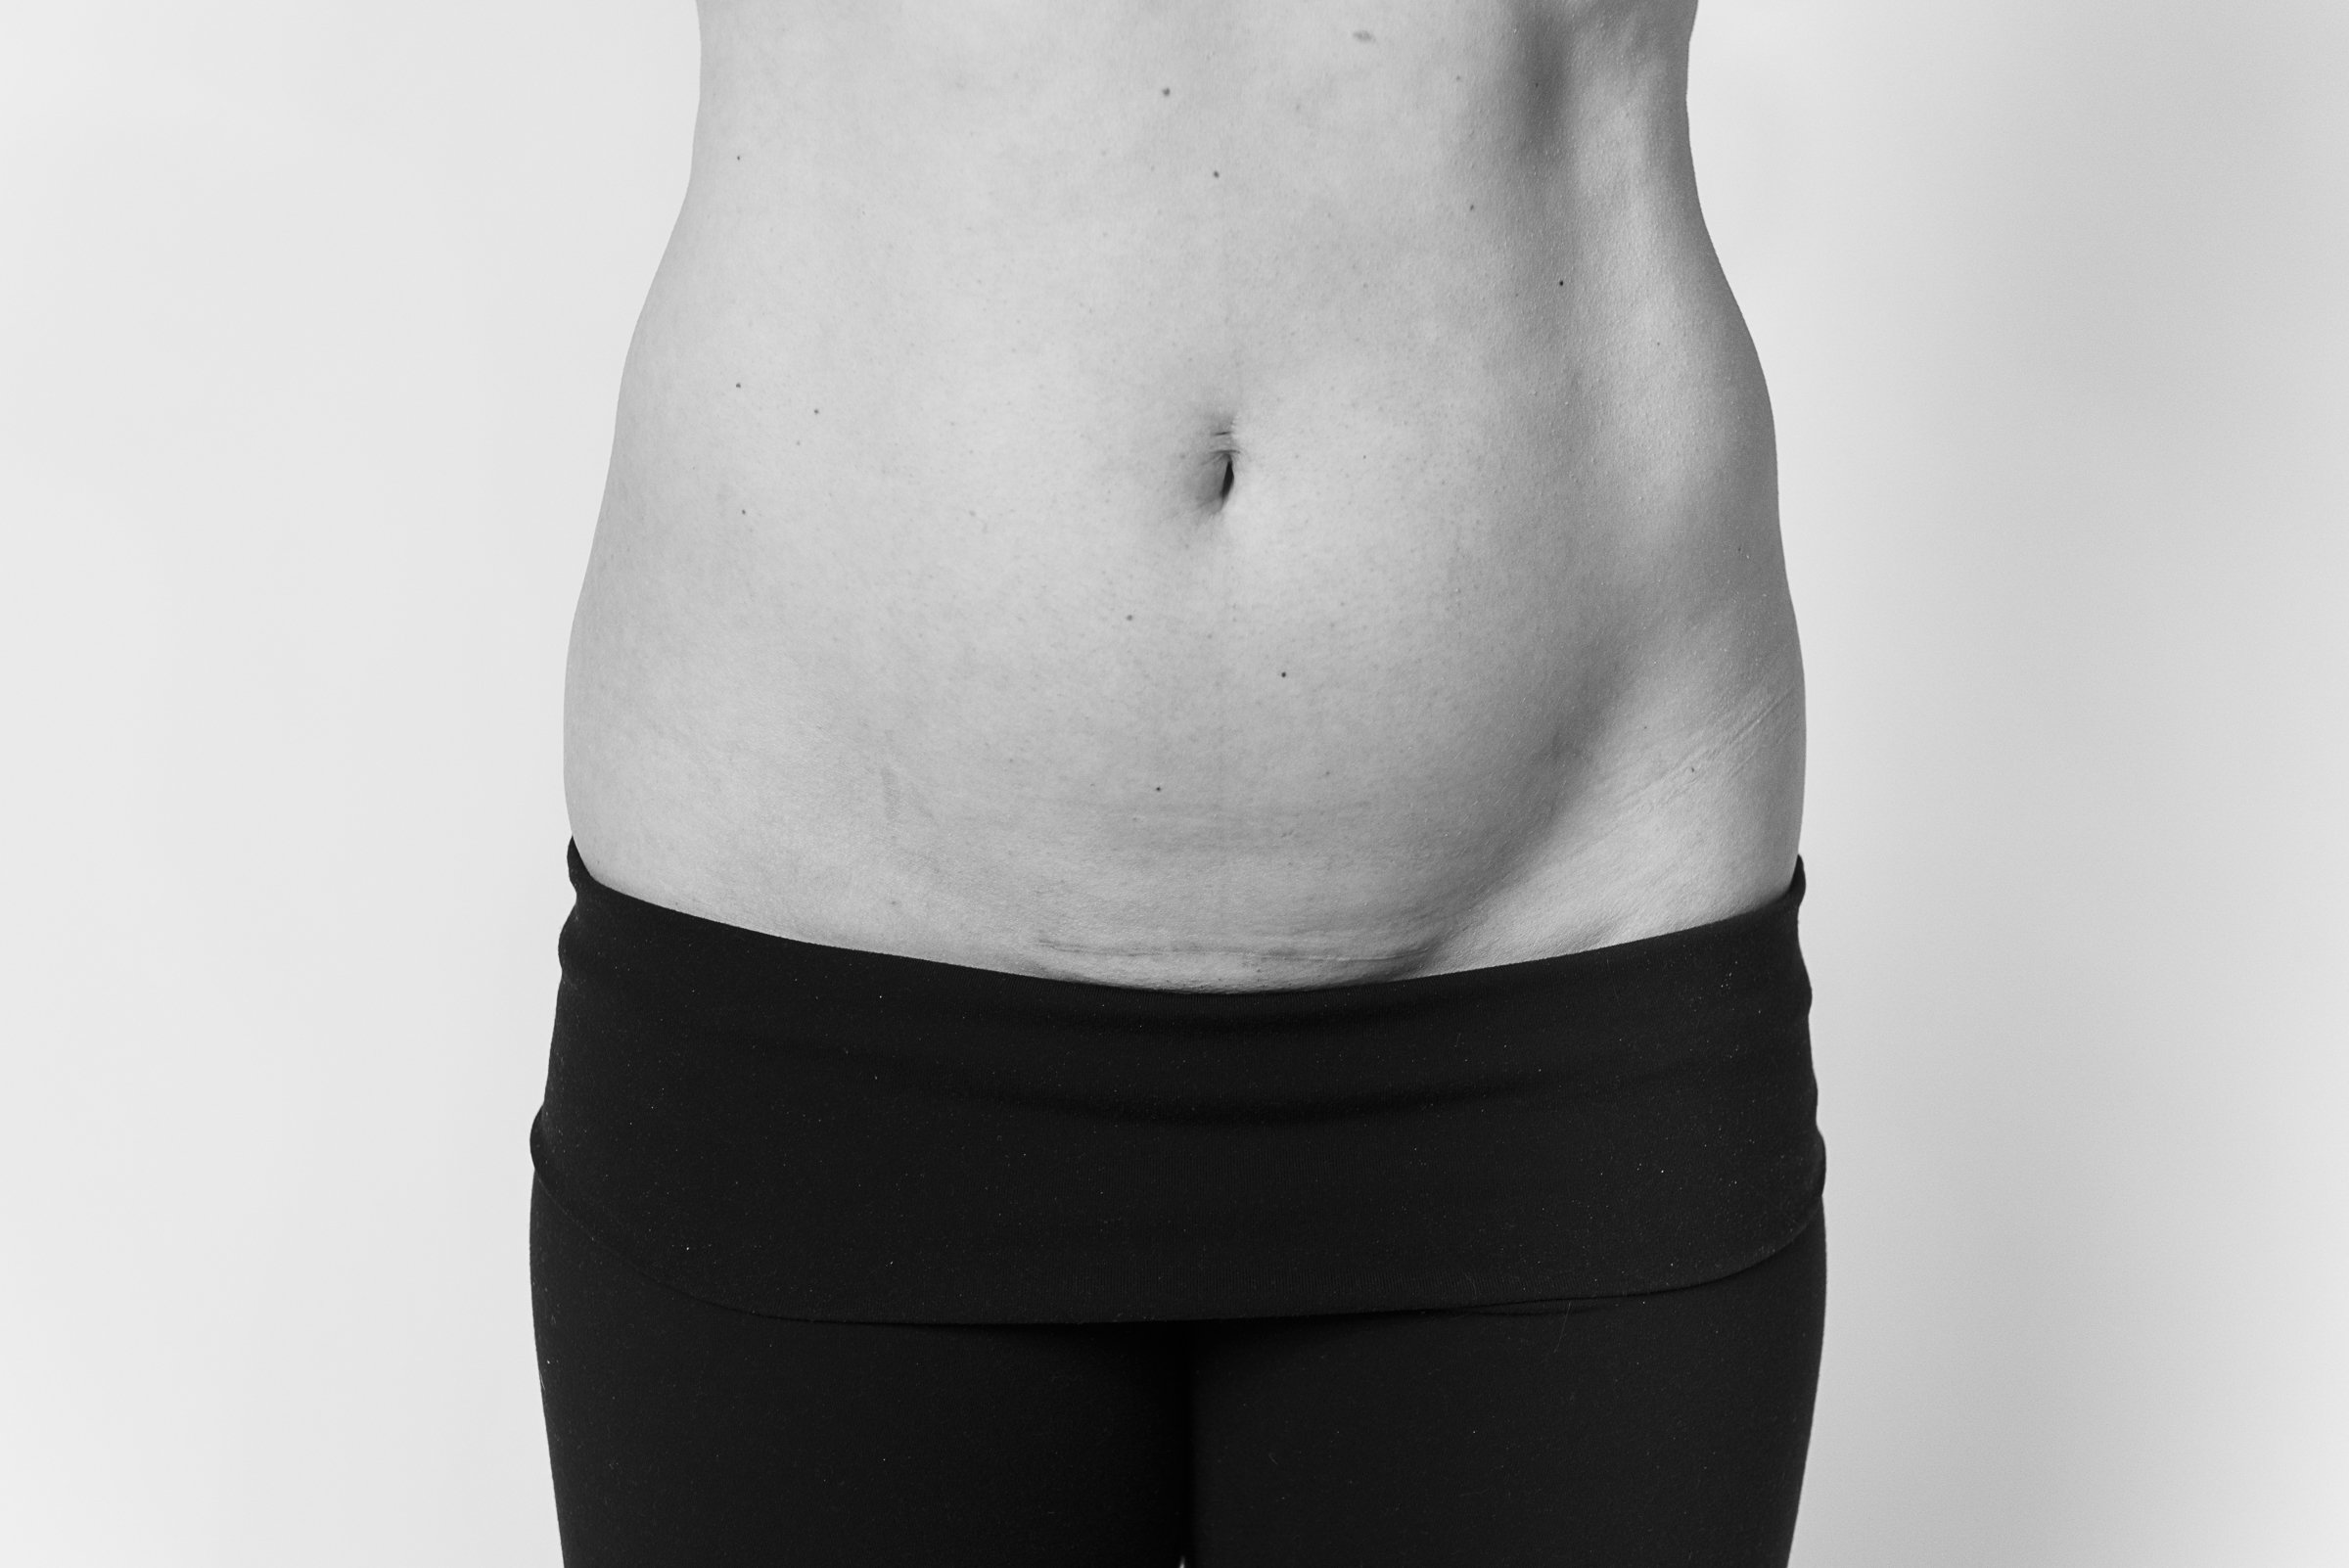 If You're Only Looking to Get Flat Abs Post-Pregnancy, I'm Not Your Trainer